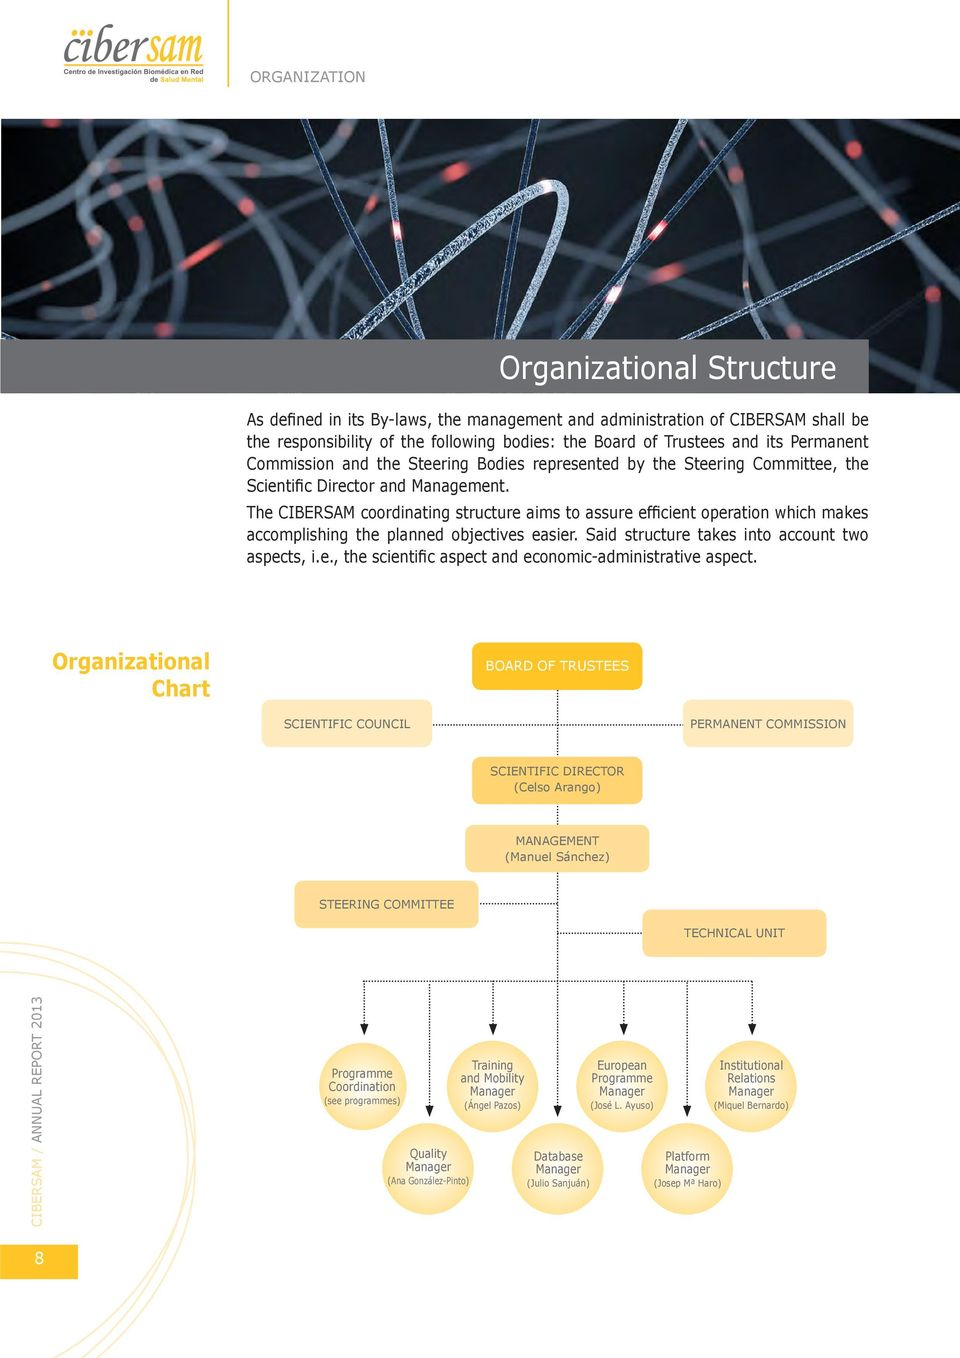 The CIBERSAM coordinating structure aims to assure efficient operation which makes accomplishing the planned objectives easier. Said structure takes into account two aspects, i.e., the scientific aspect and economic-administrative aspect.